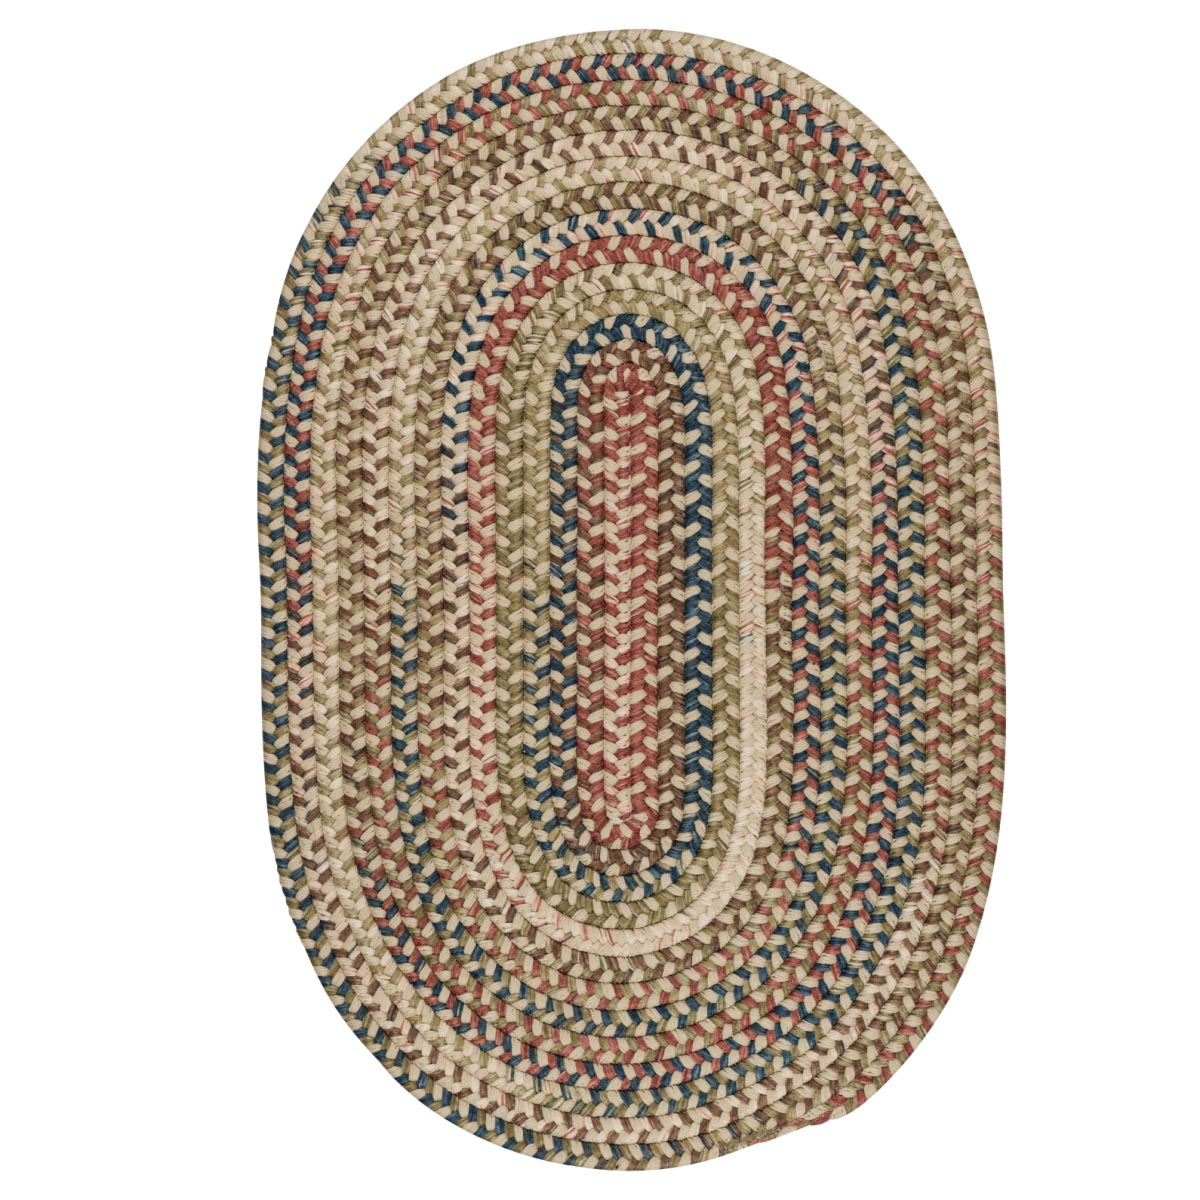 Cedar Cove Natural Outdoor Braided Oval Rugs